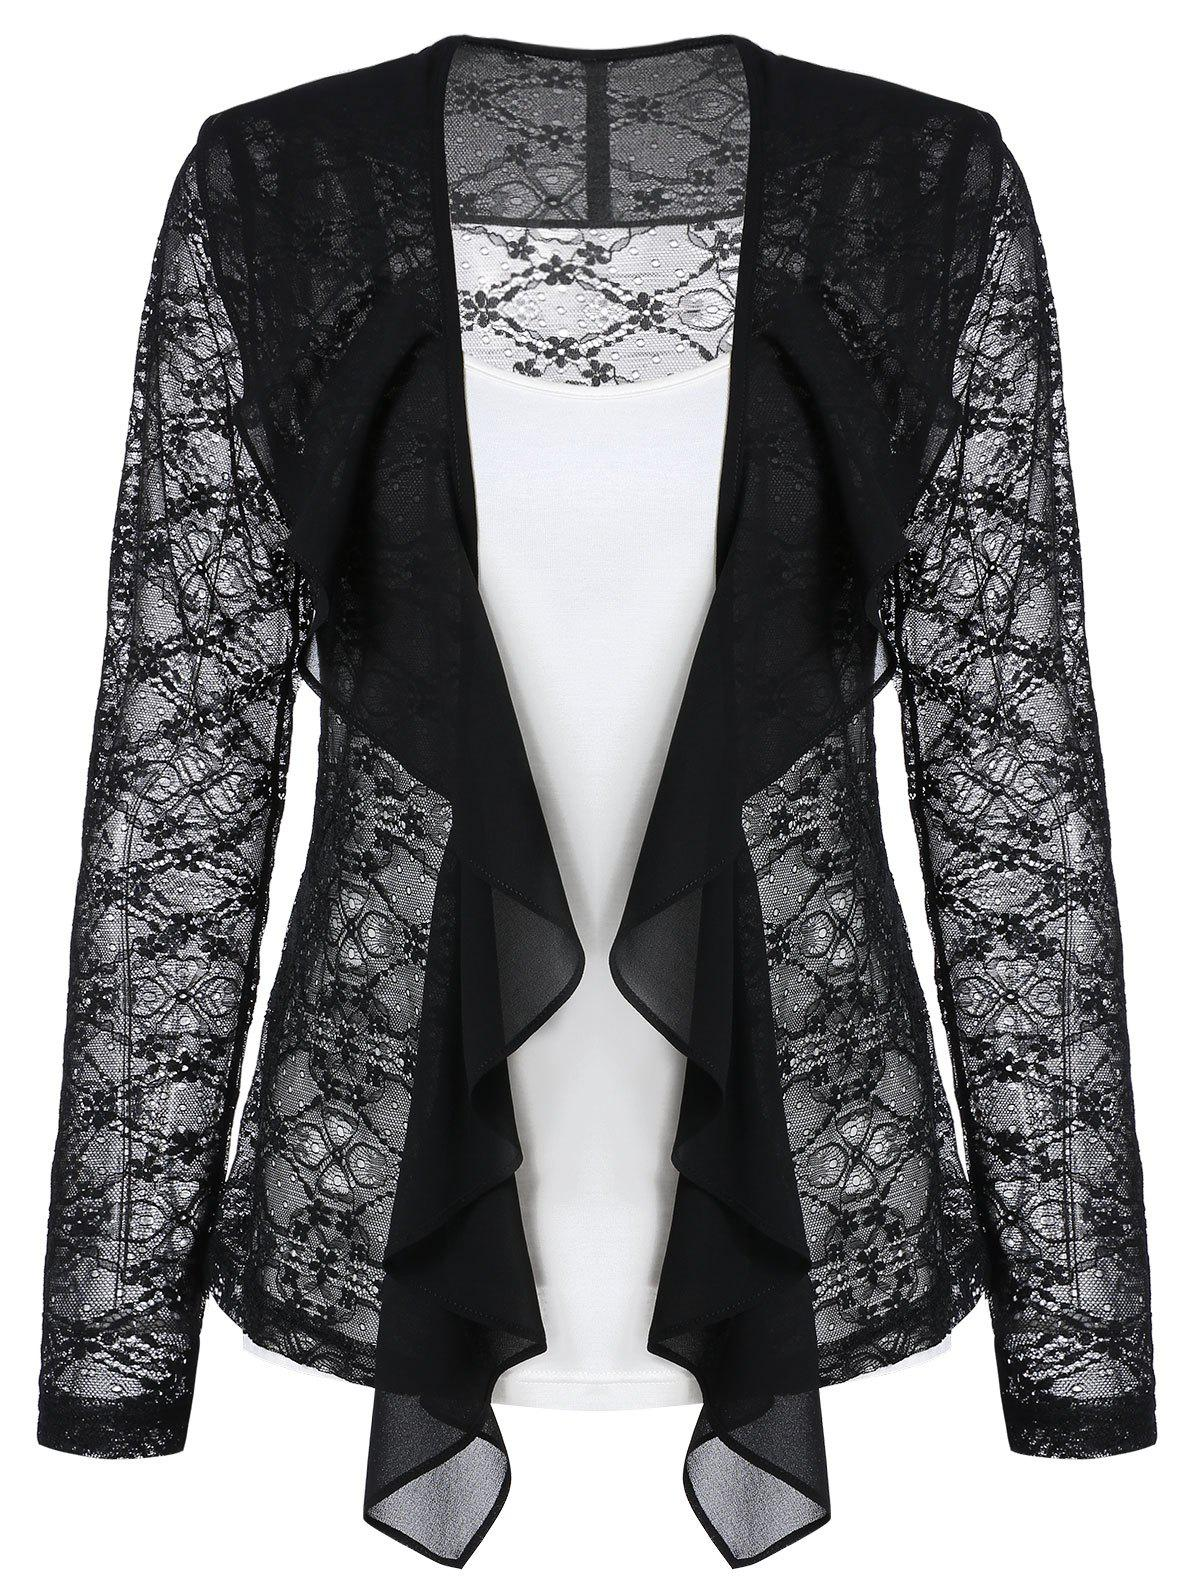 Chic Lace Sheer Draped Cardigan and Cami Top Set